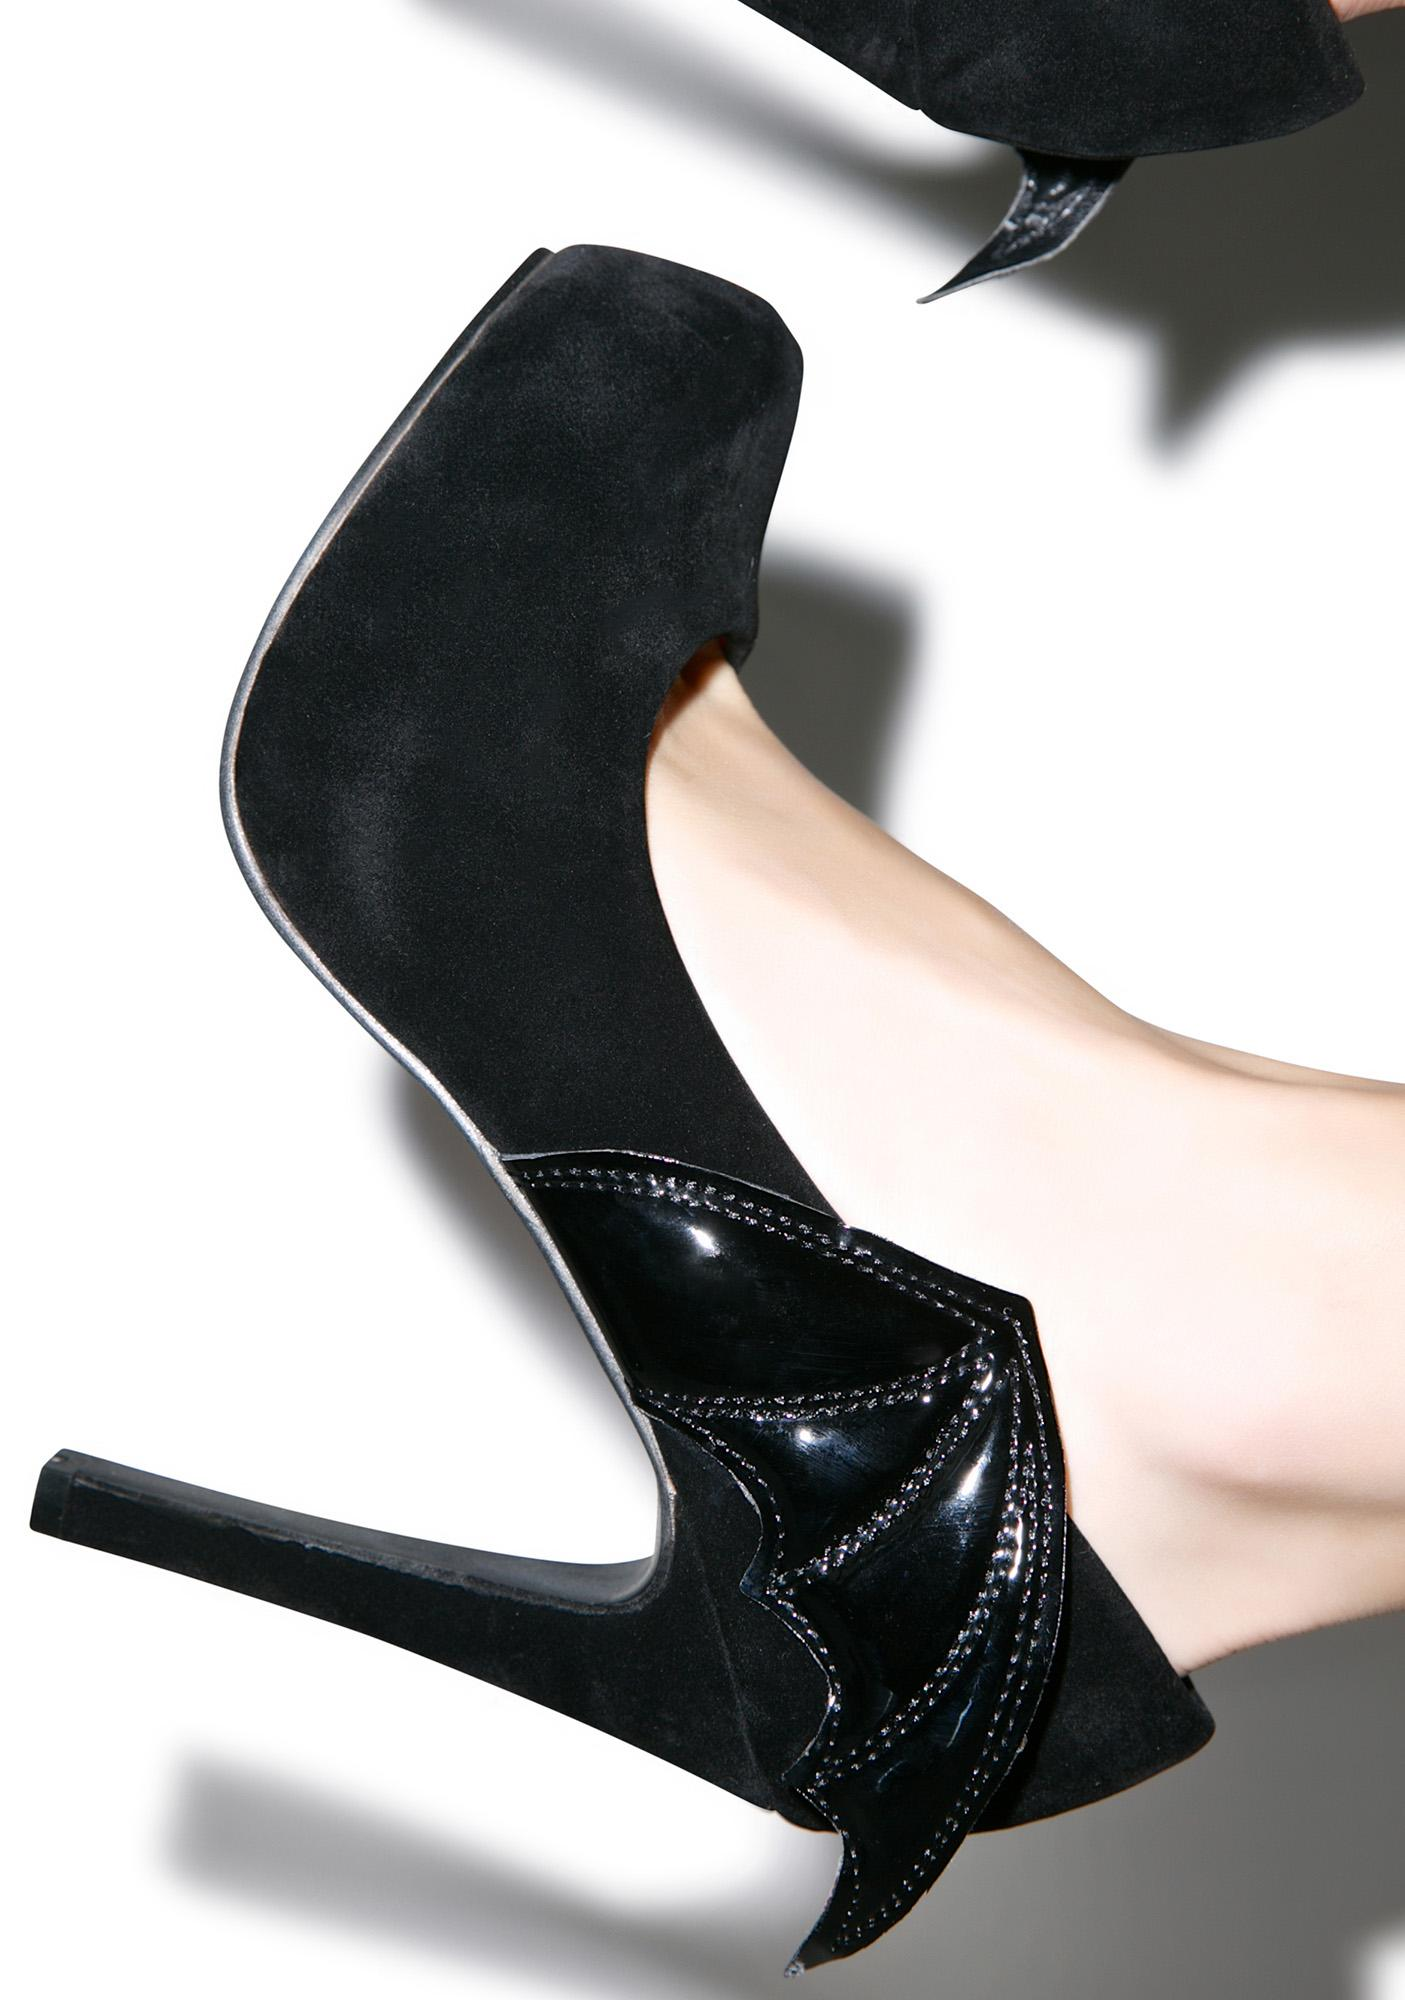 Iron Fist Night Stalker Platform Heels